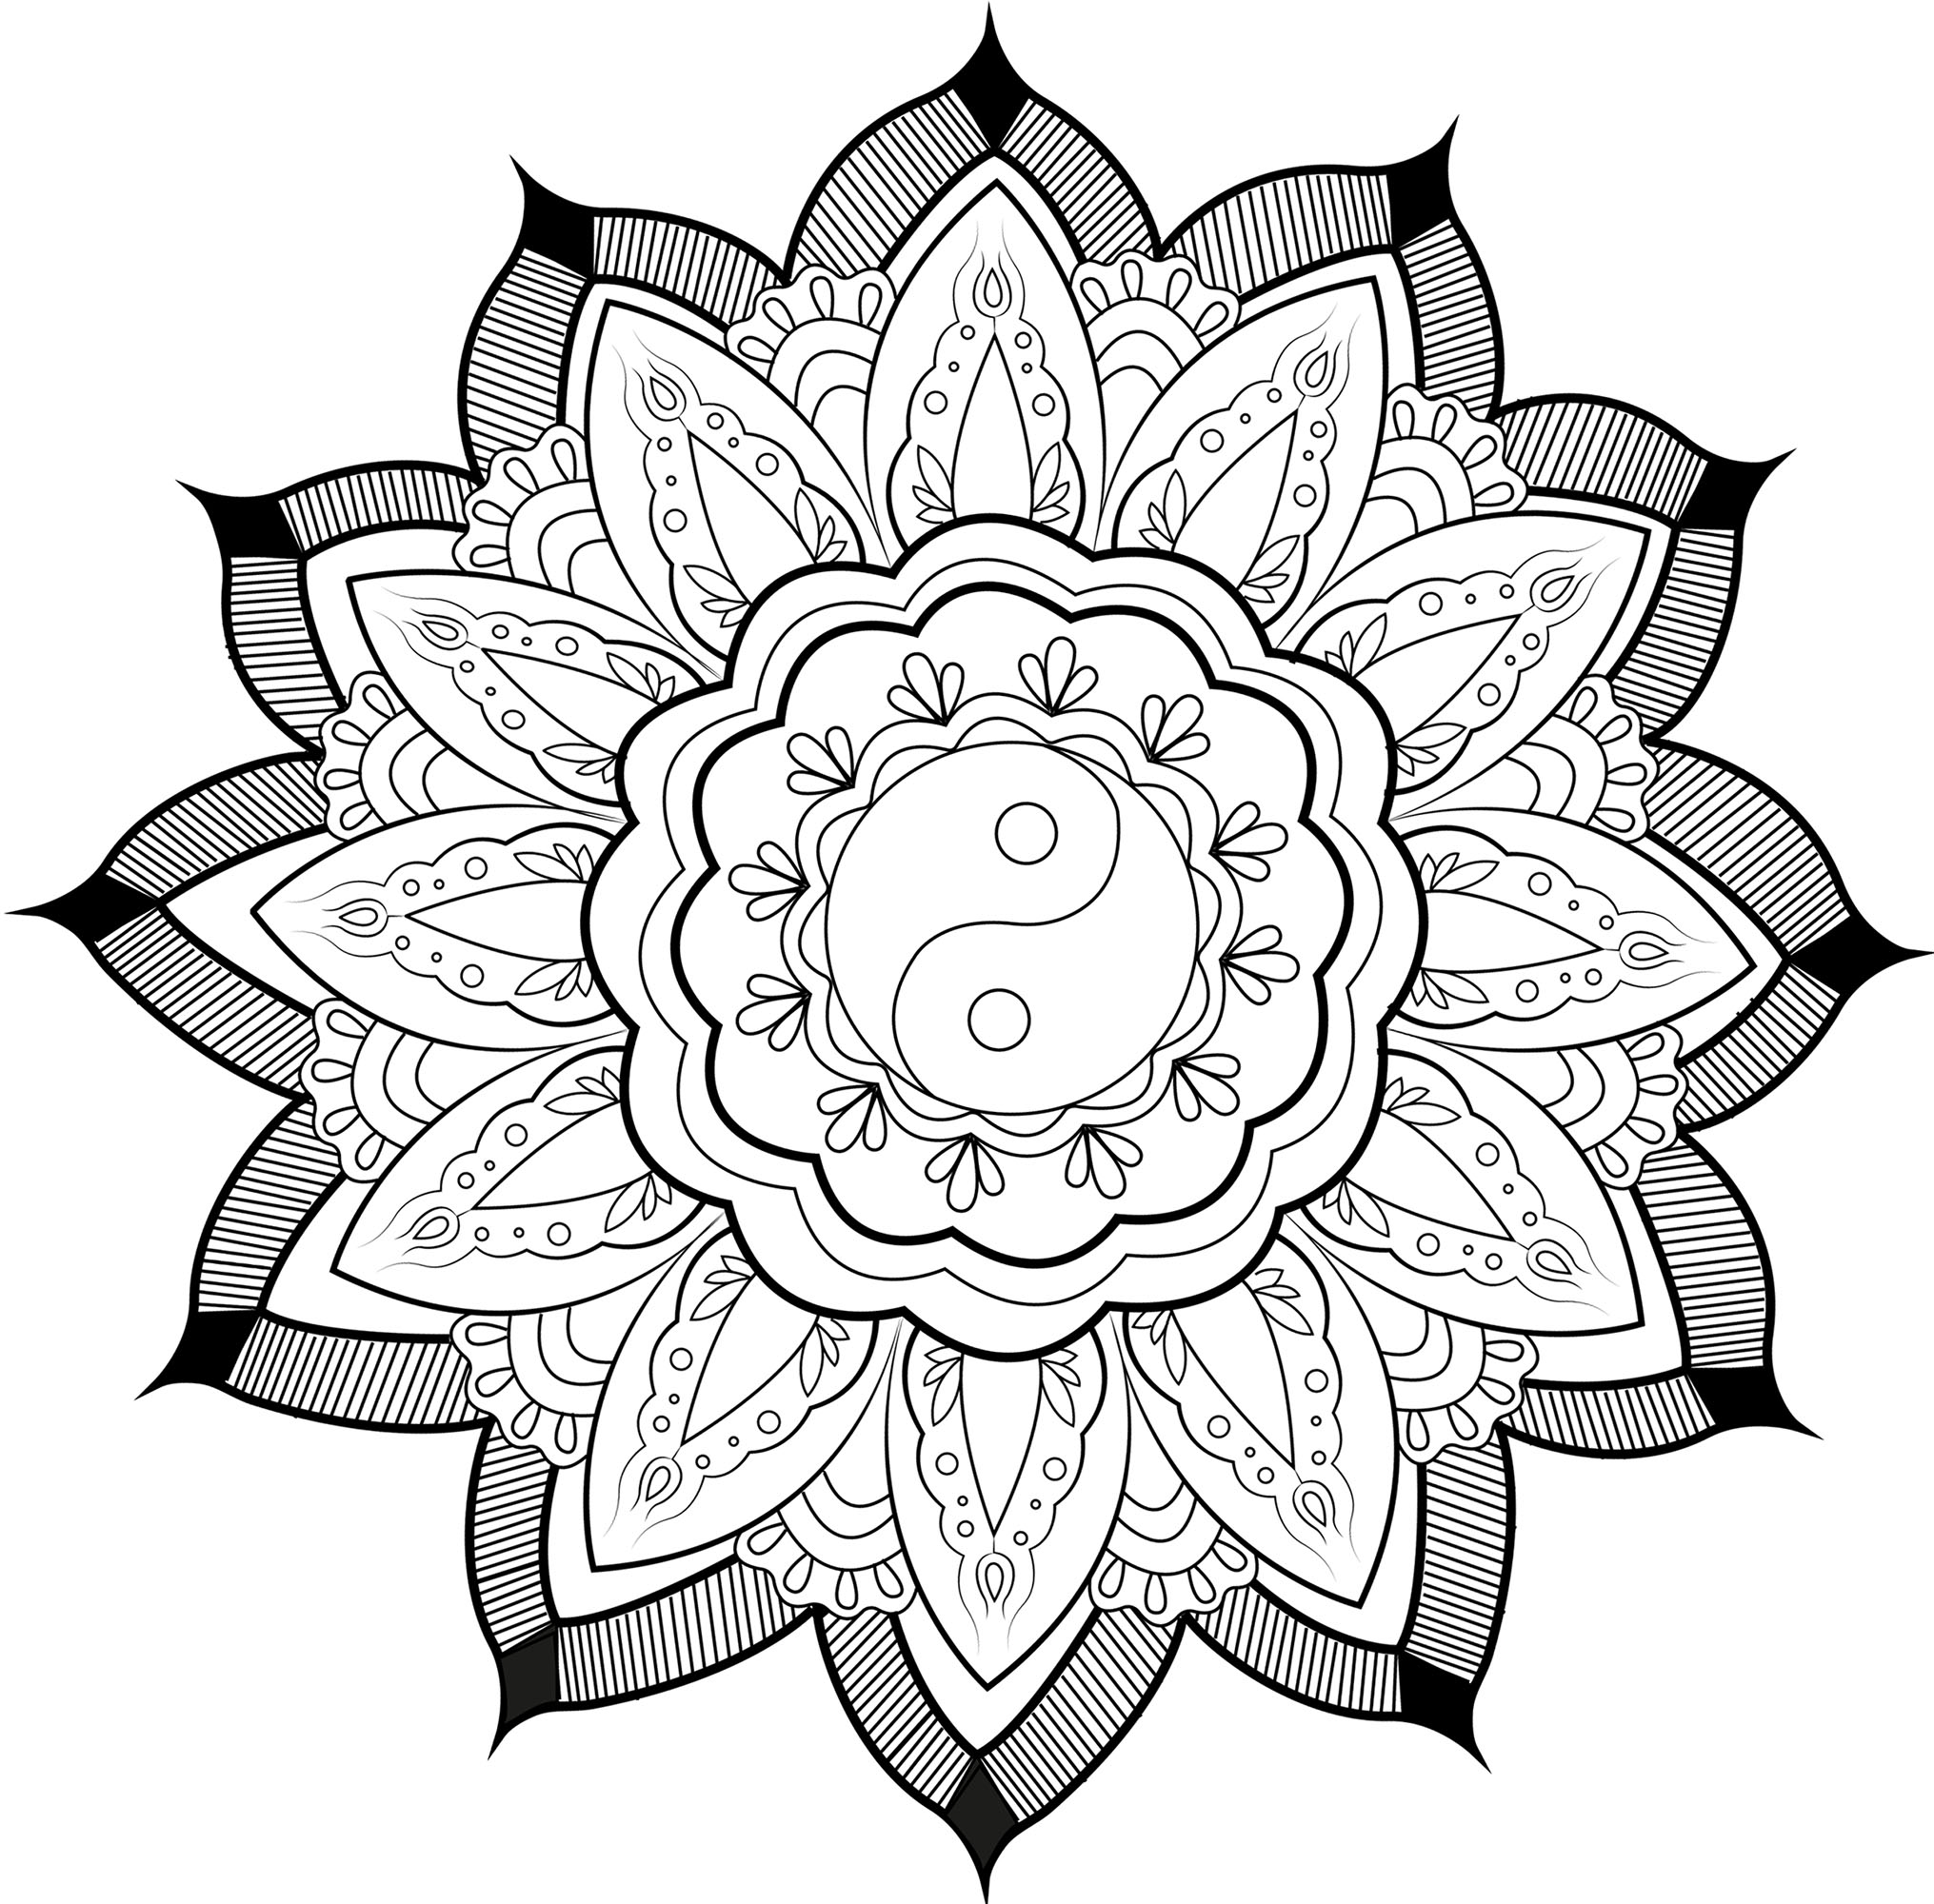 Color this cute Yin & Yang Mandala surrounded by pretty leaves